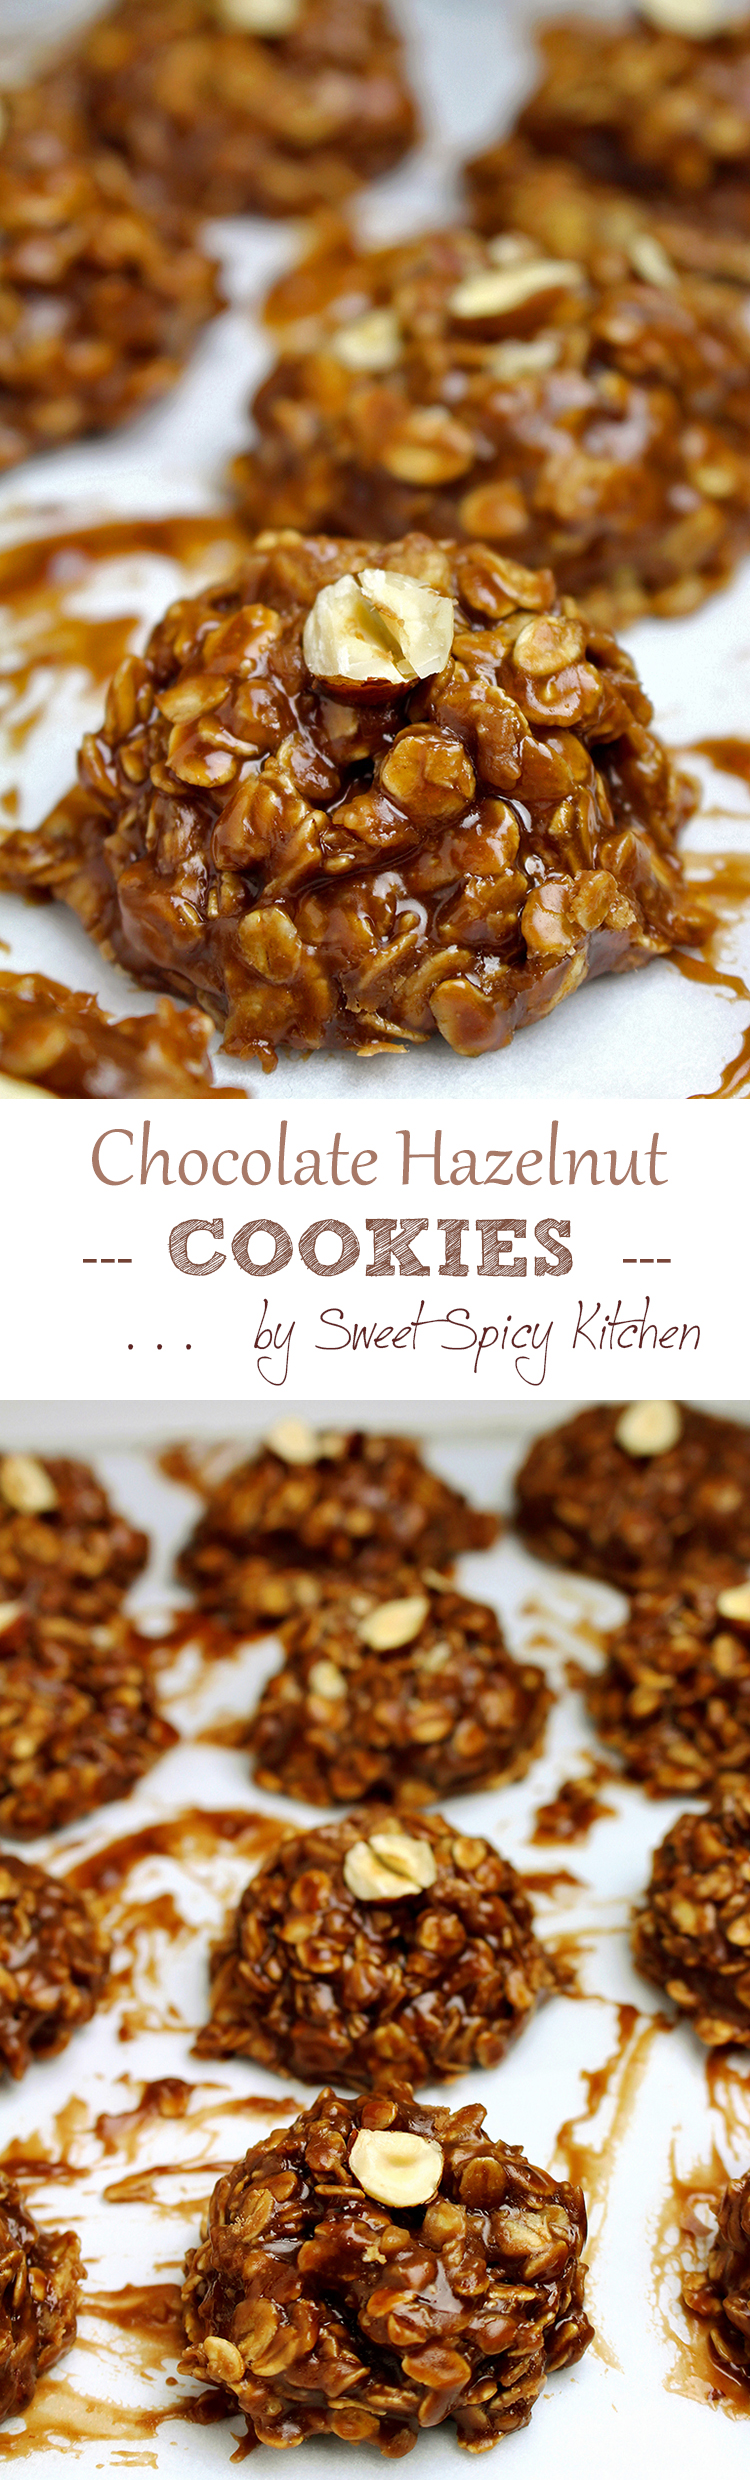 Untitled-288 No Bake Chocolate Hazelnuts Cookies